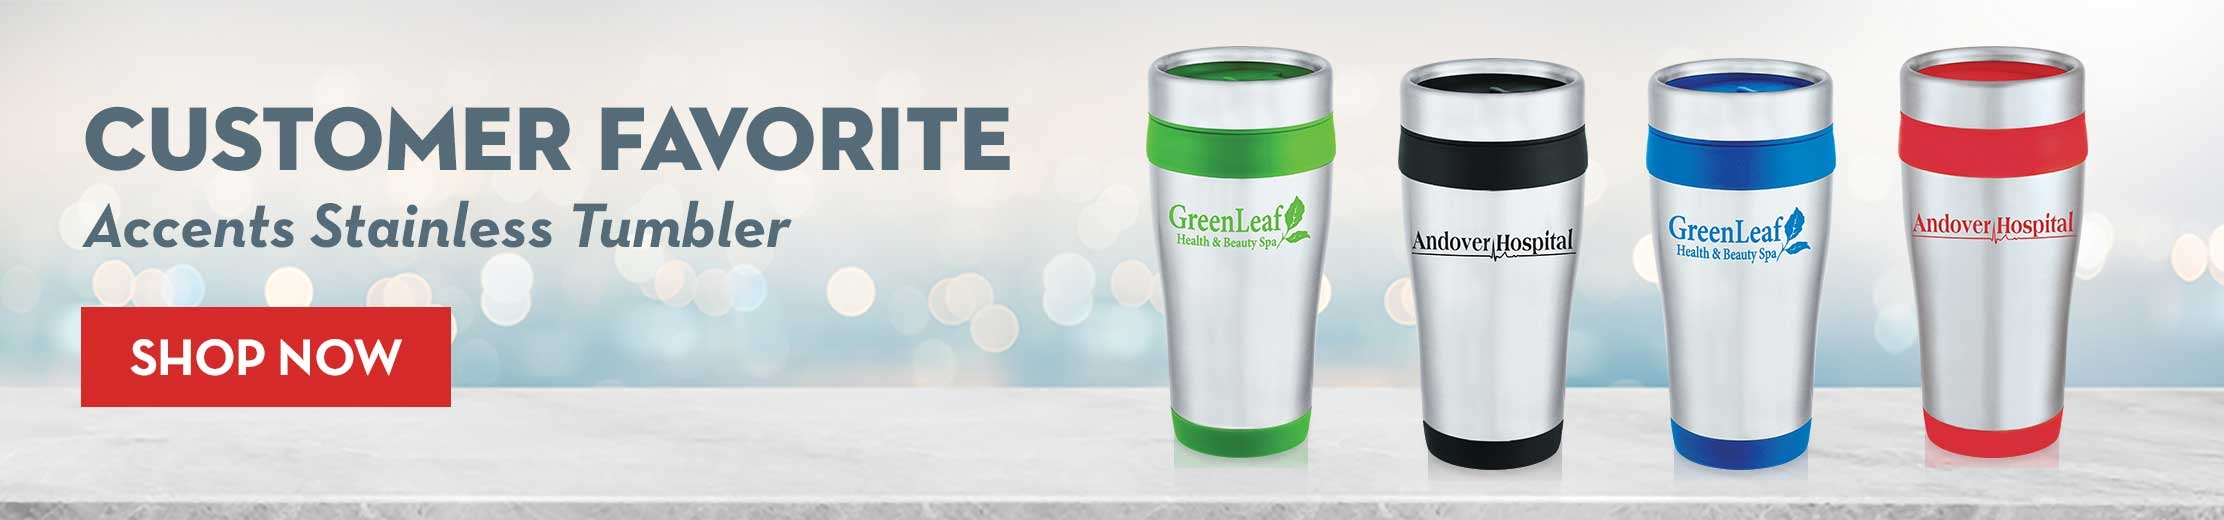 Customer Favorite Custom Tumbler